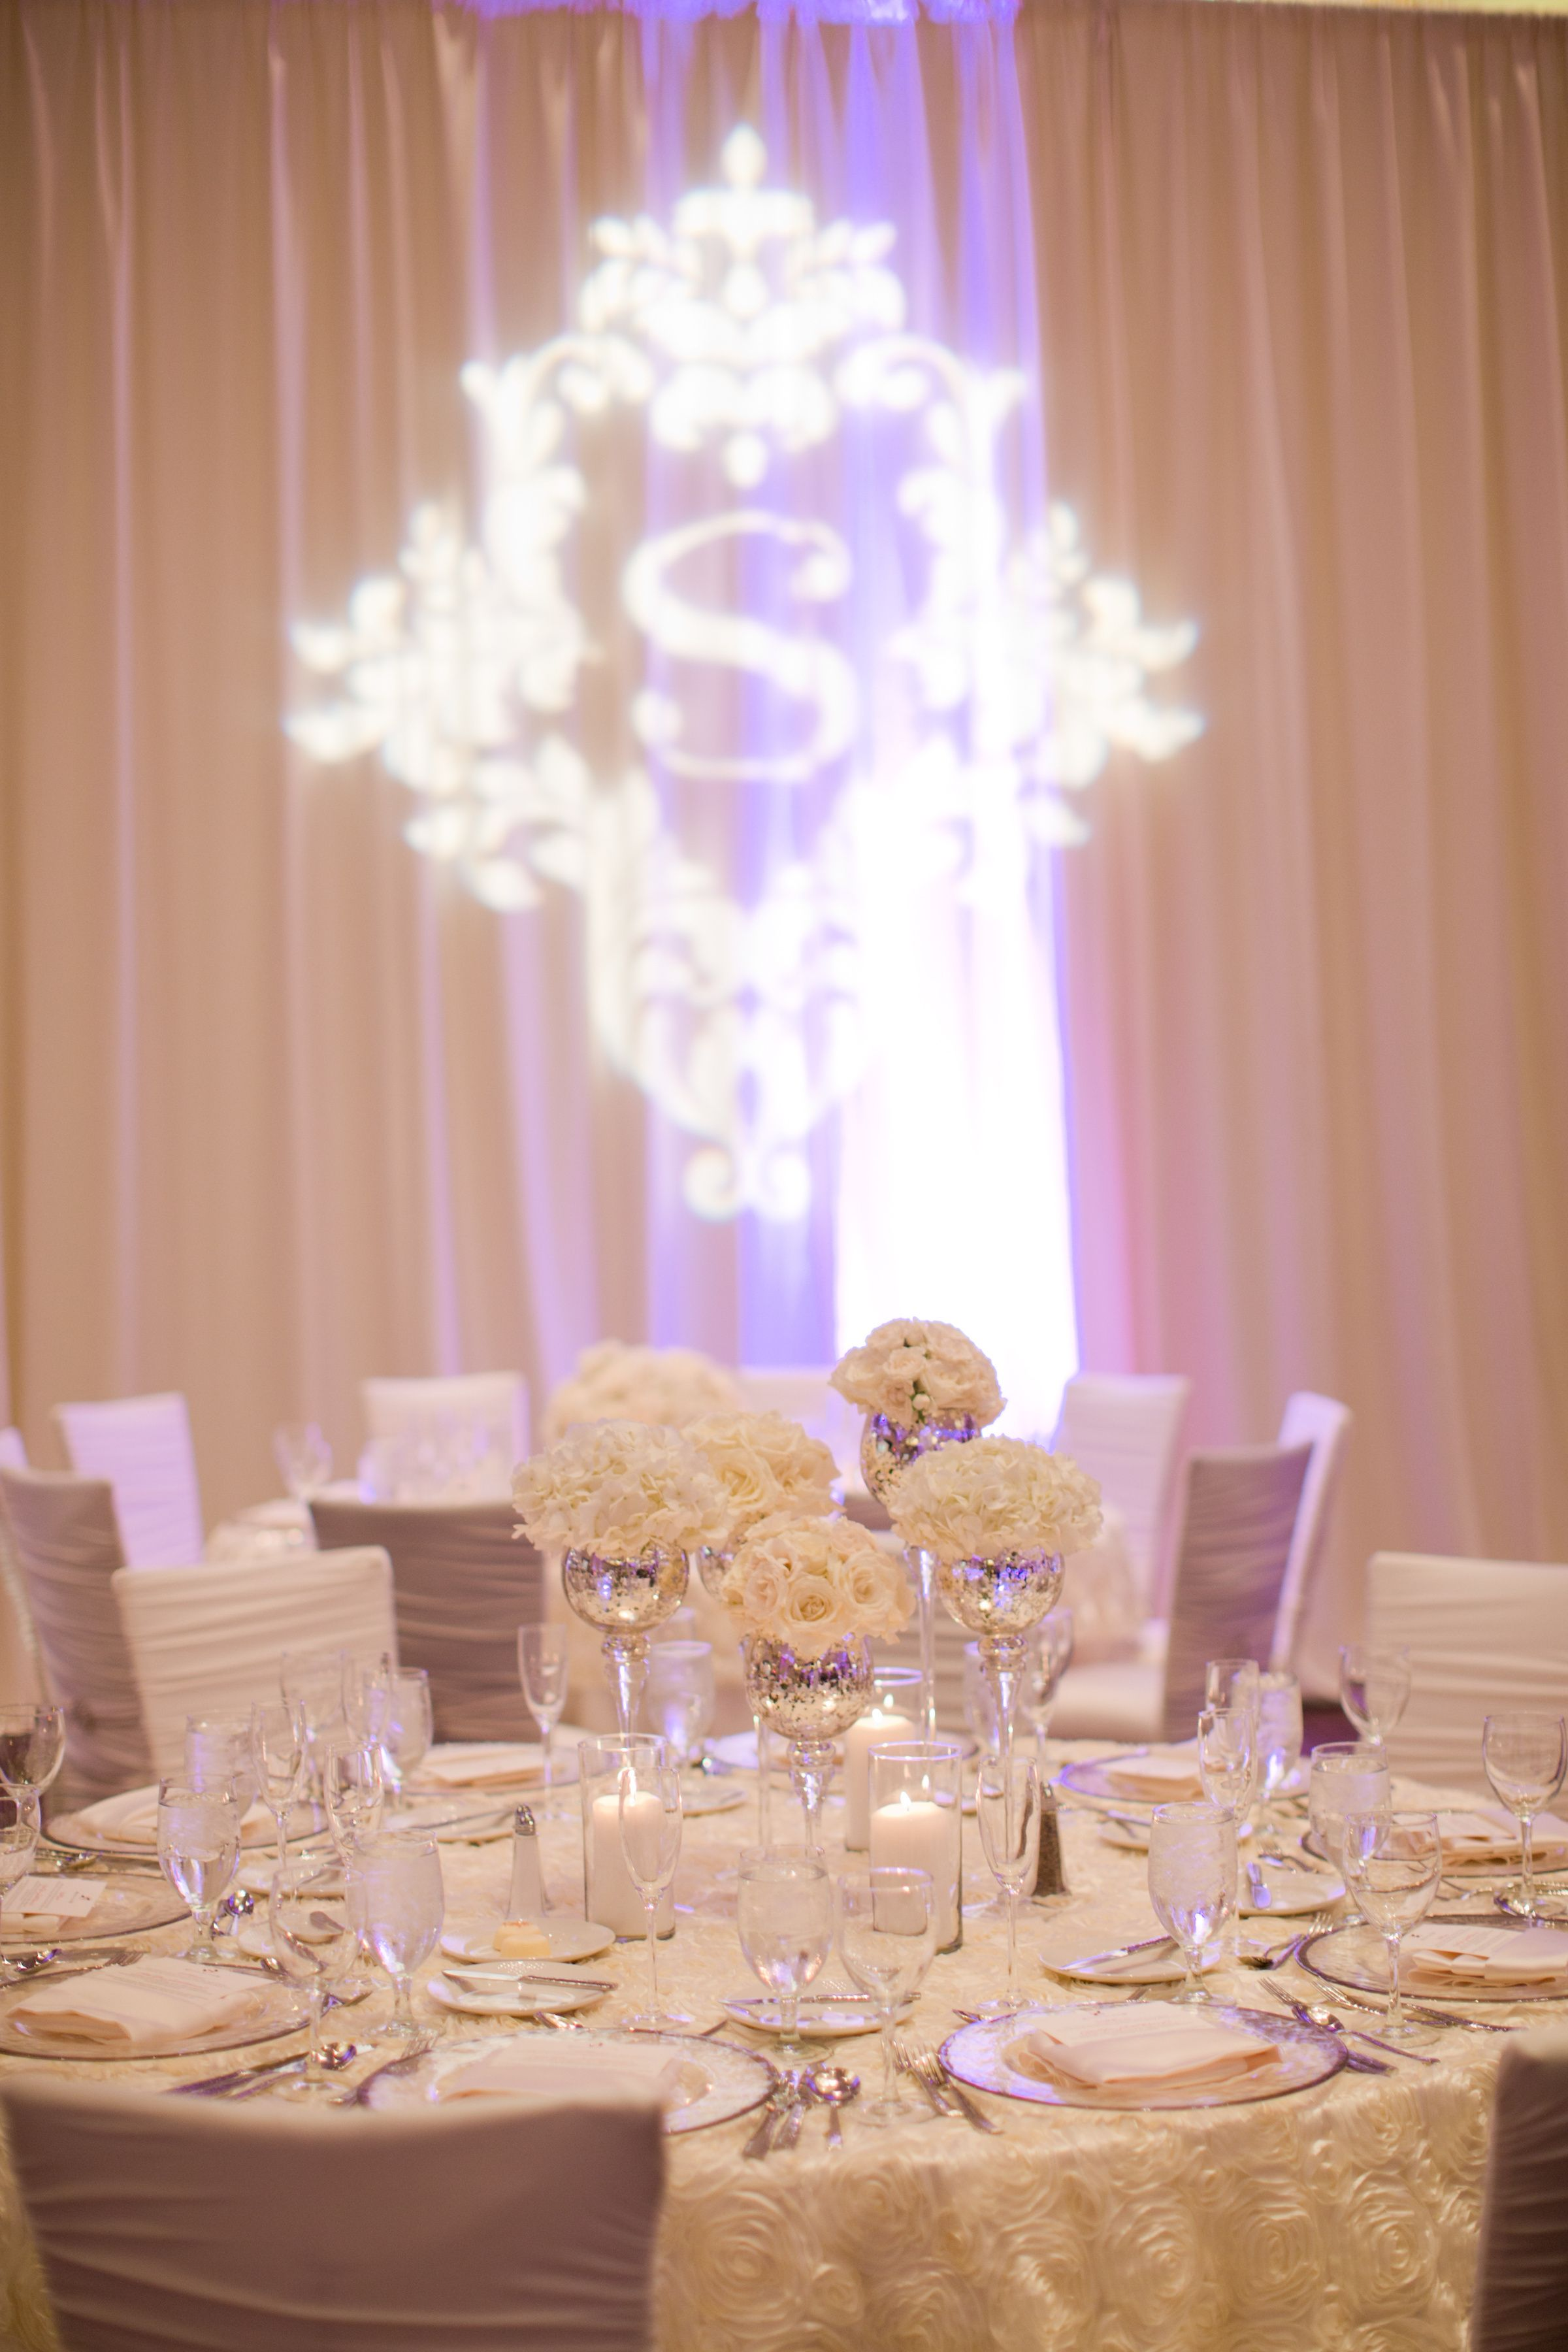 Gobo By Beyond For This Amazing Wedding Reception At Dallas Omni